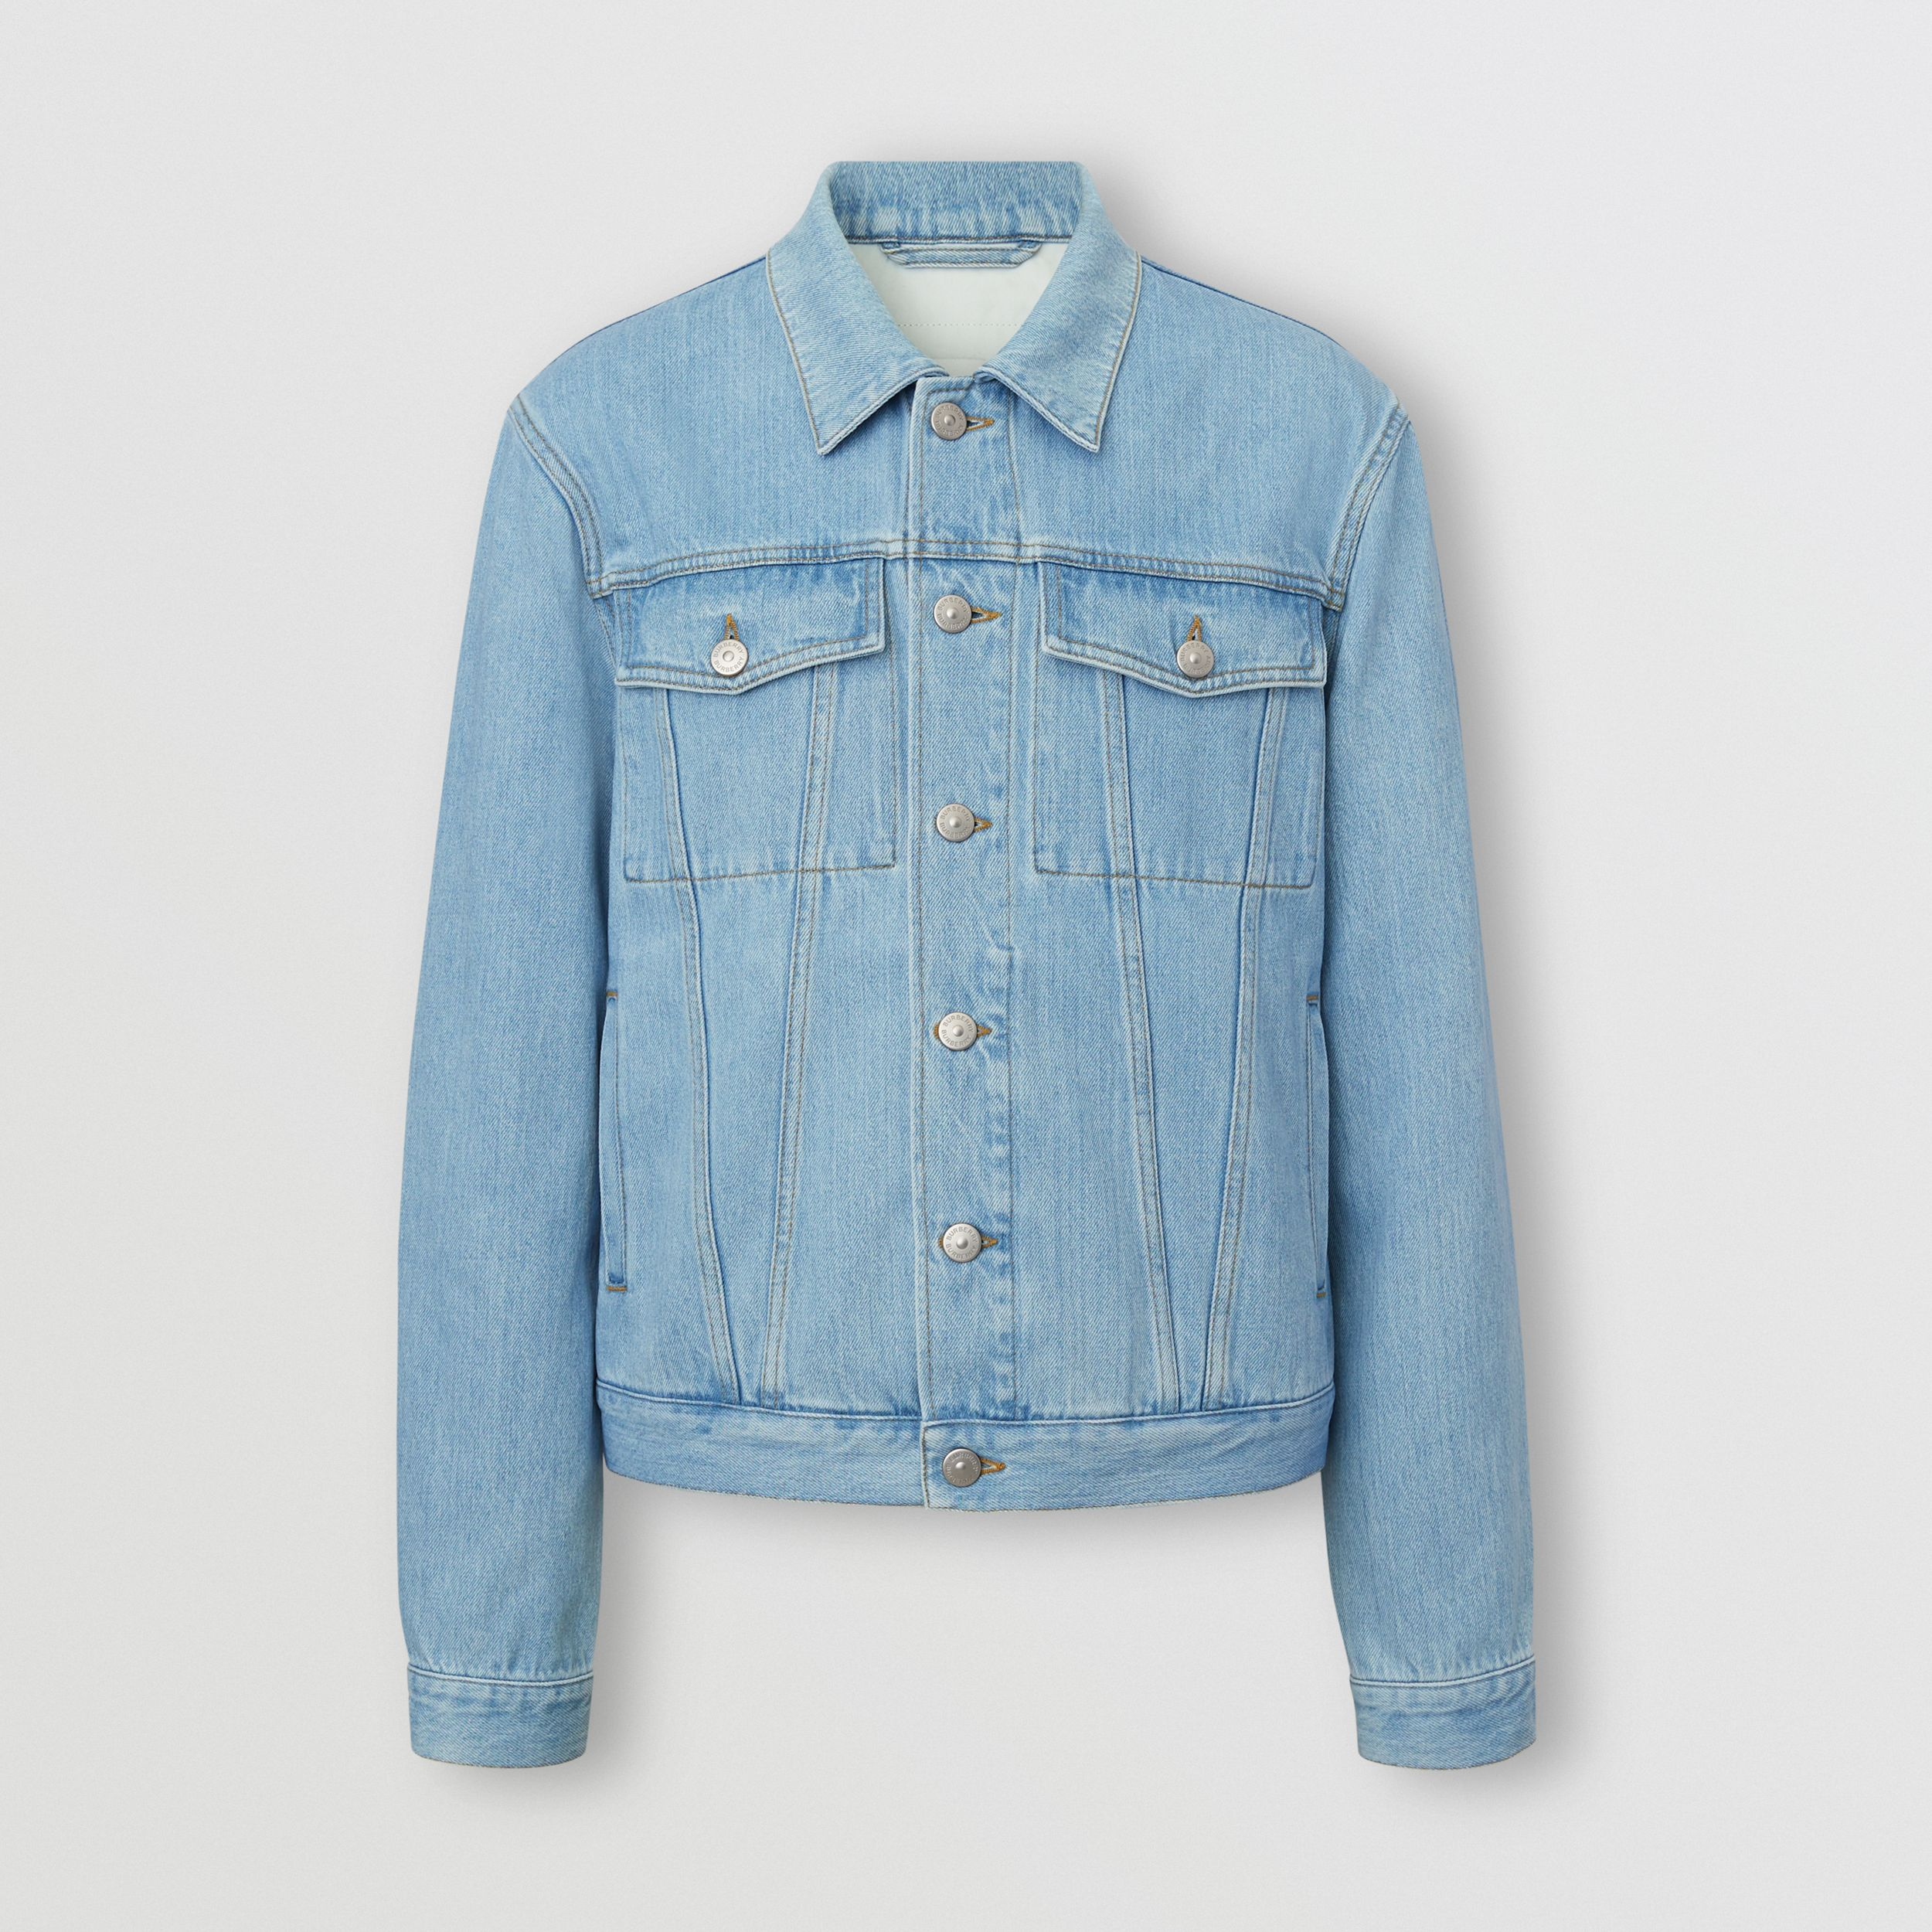 Logo Appliqué Japanese Denim Jacket in Light Indigo Blue - Men | Burberry Australia - 1